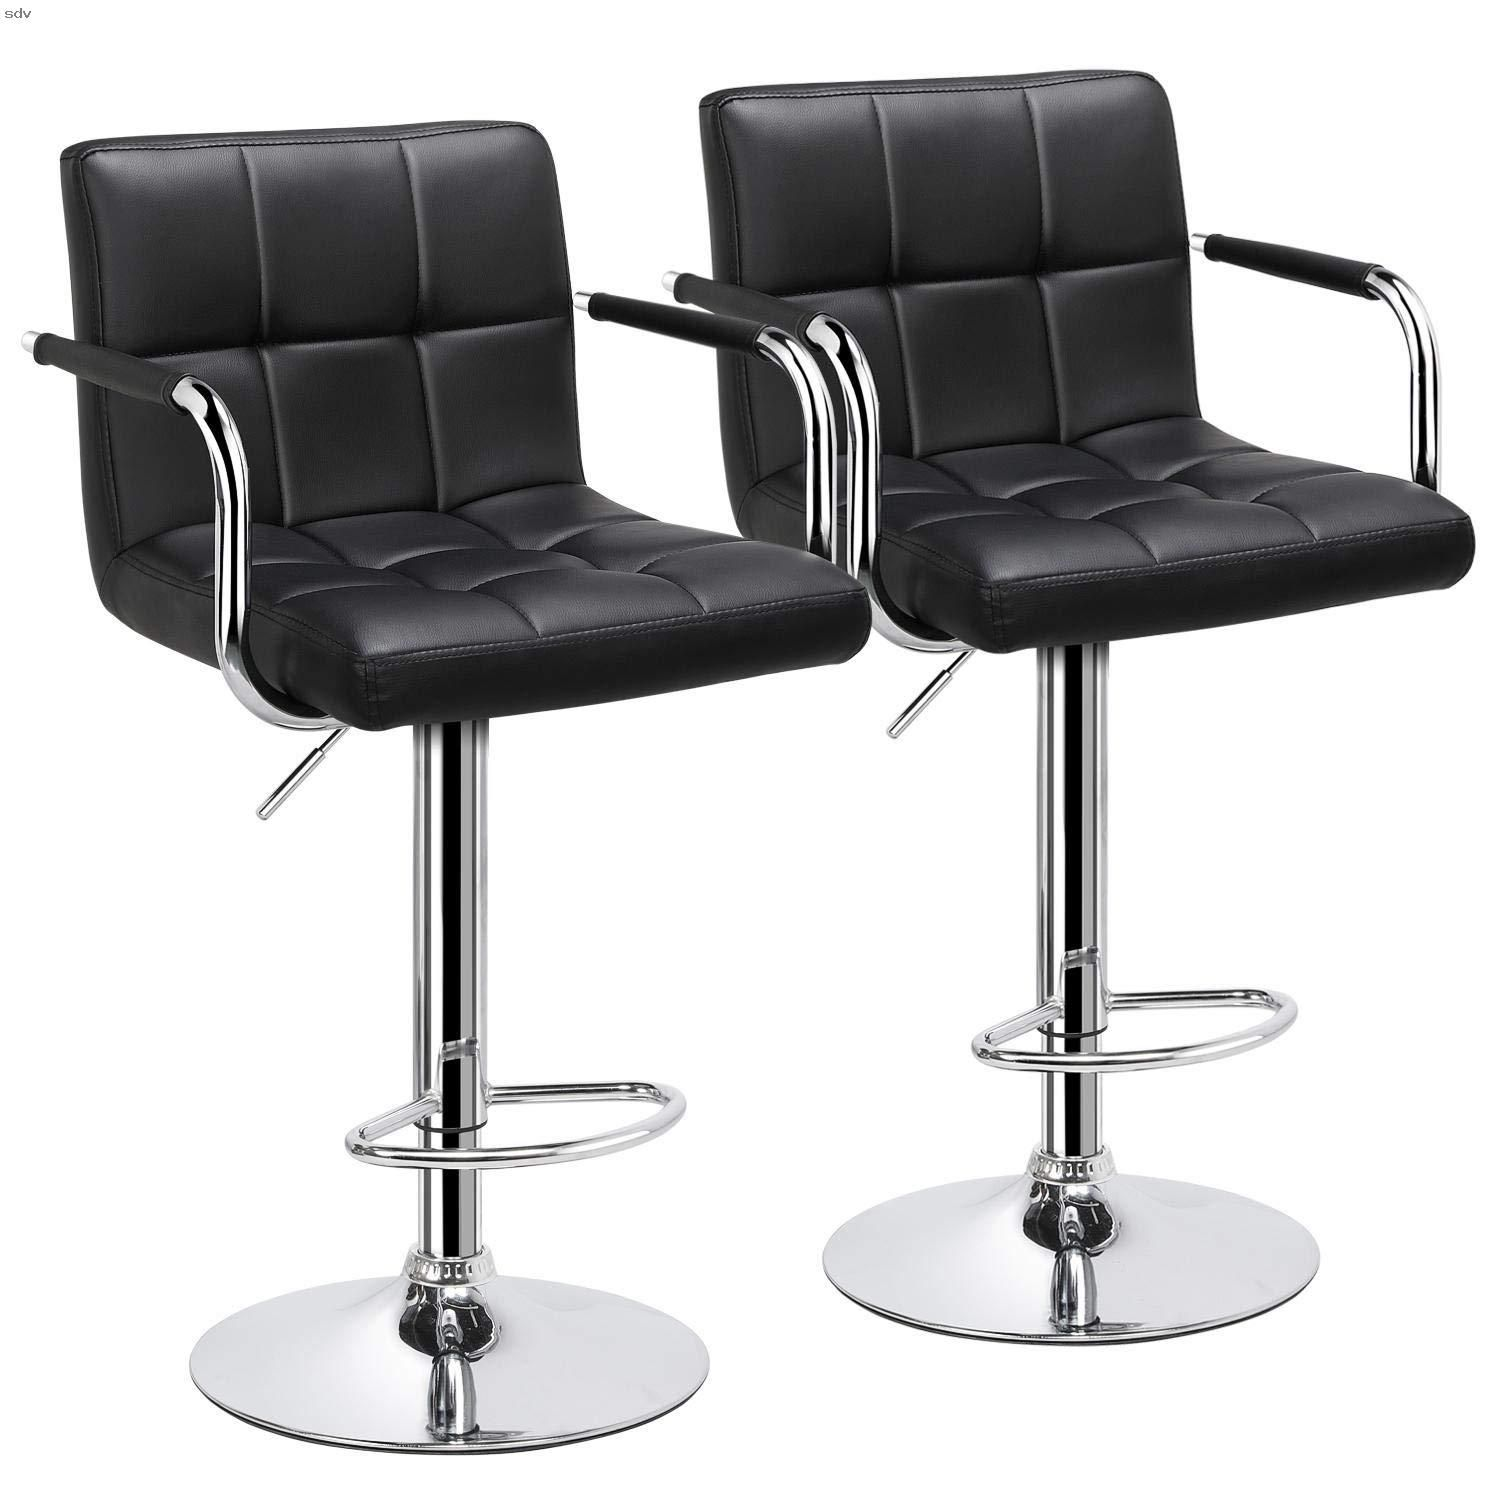 Yaheetech Bar Stools Set Of 2 Black Adjustable Counter Stools Bar Chairs Synthetic Leather Modern Design Swivel Barstools Gas Lift Stools For Kitchen Counter 36 Di 2020